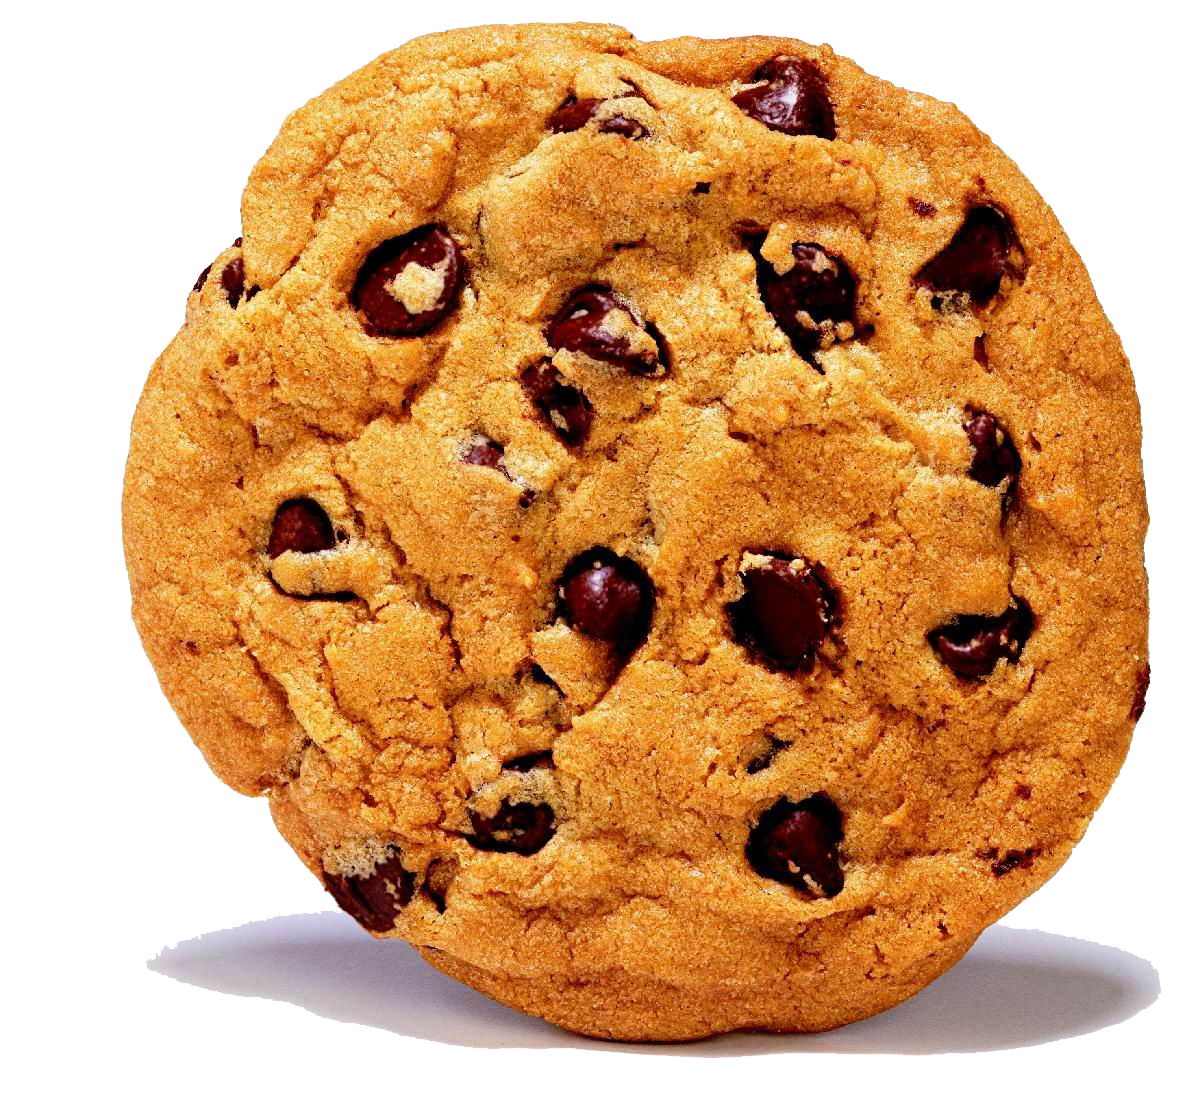 Chips transparent animated. Cookie png images all